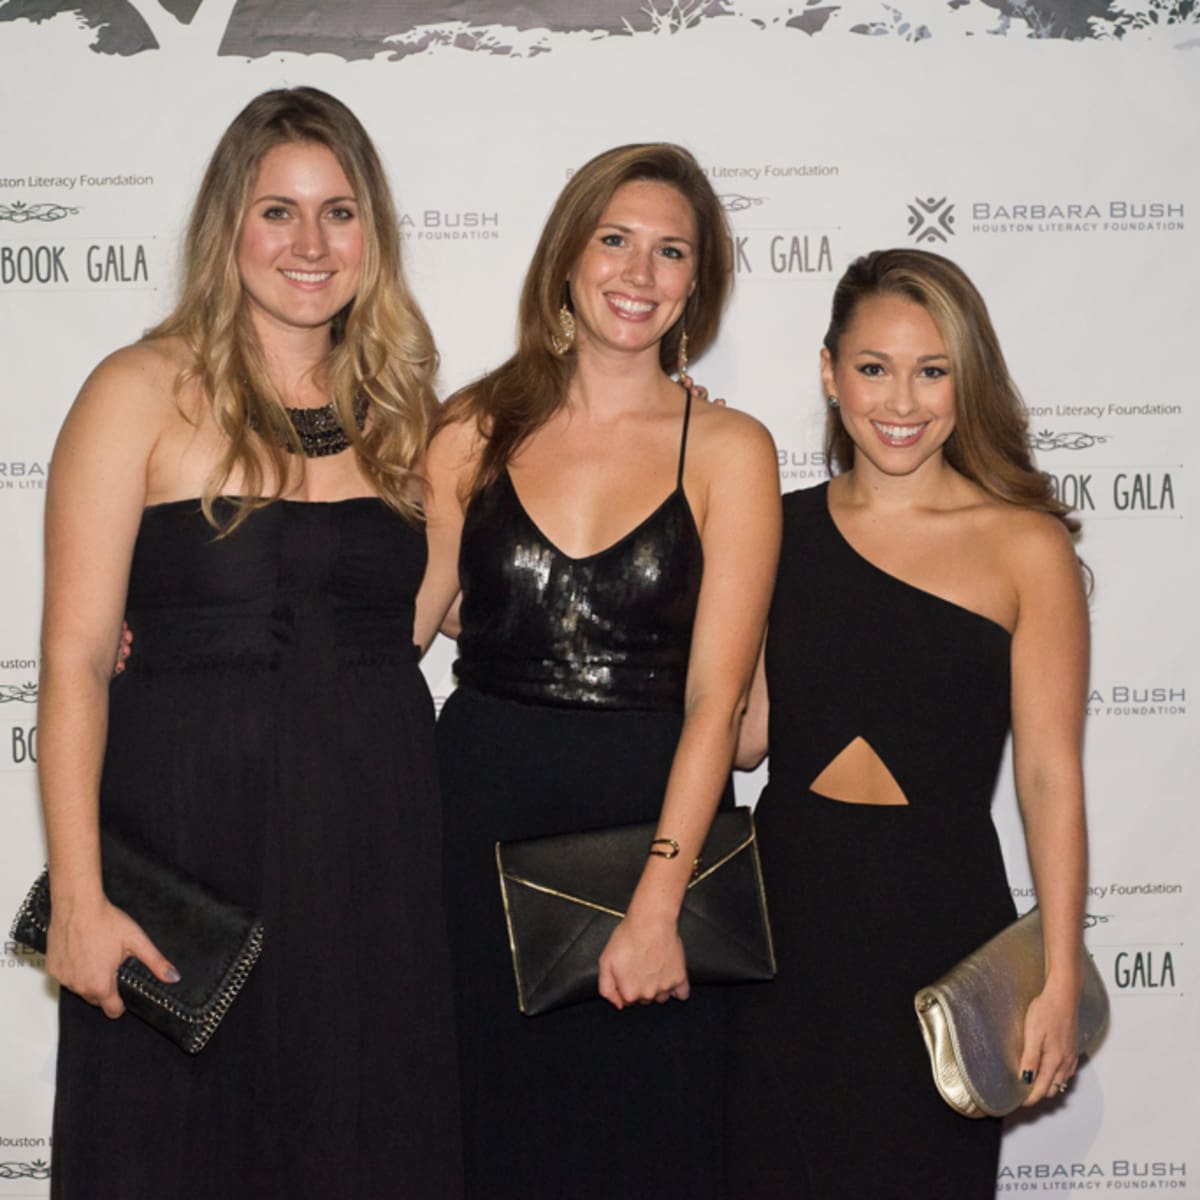 News, Shelby, Barbara Bush Literacy YP gala, Laura Dwight, Sarah Scully, Christina Gutierrez